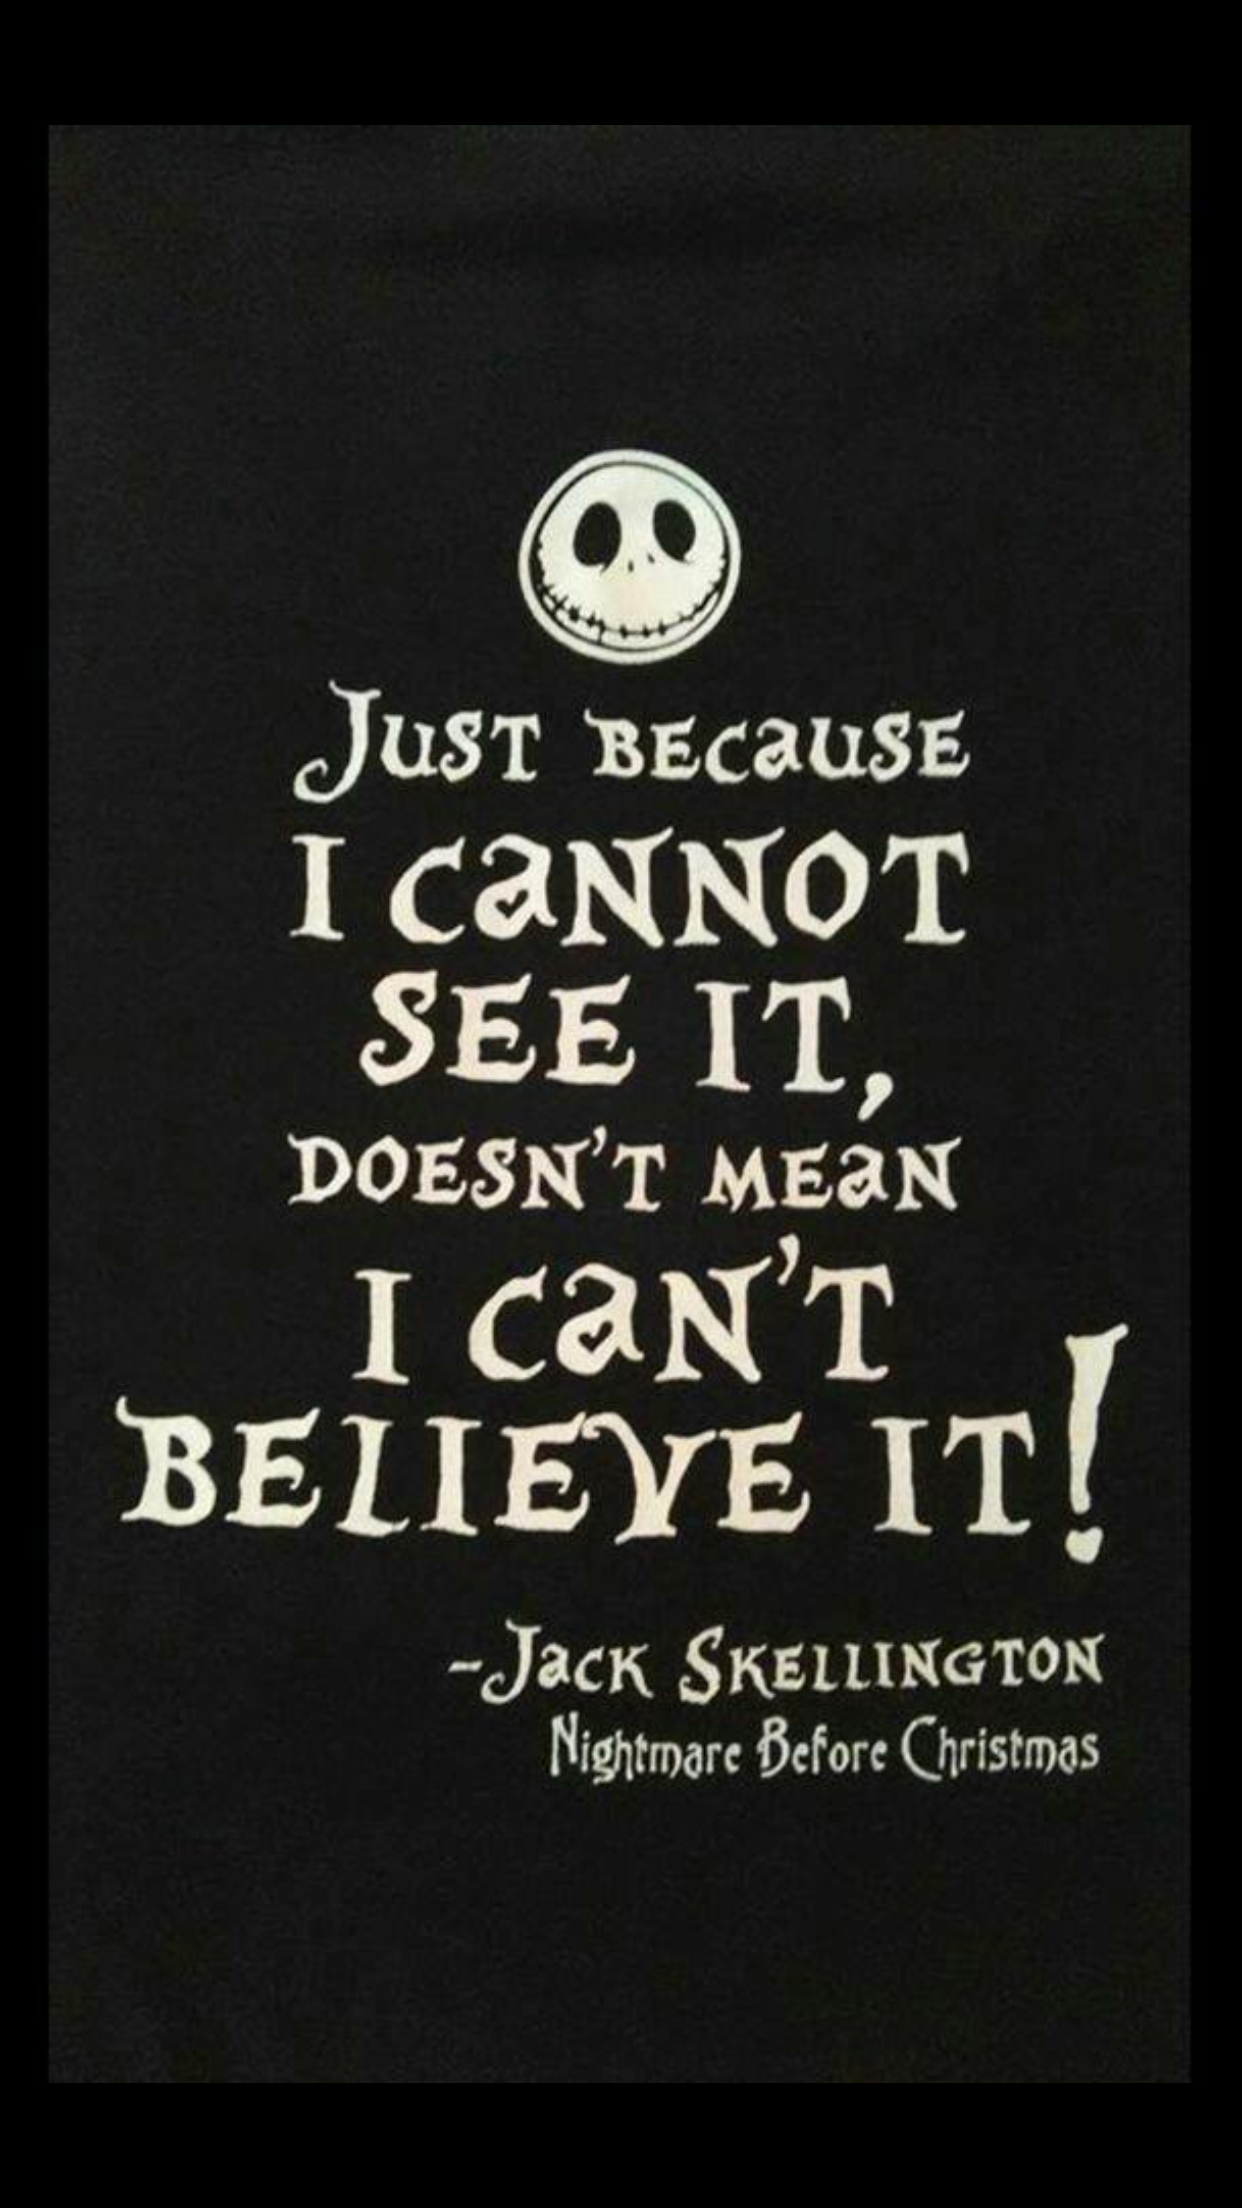 Pin by Alison Knight on Quotes Halloween | Sprüche, Disney zitate